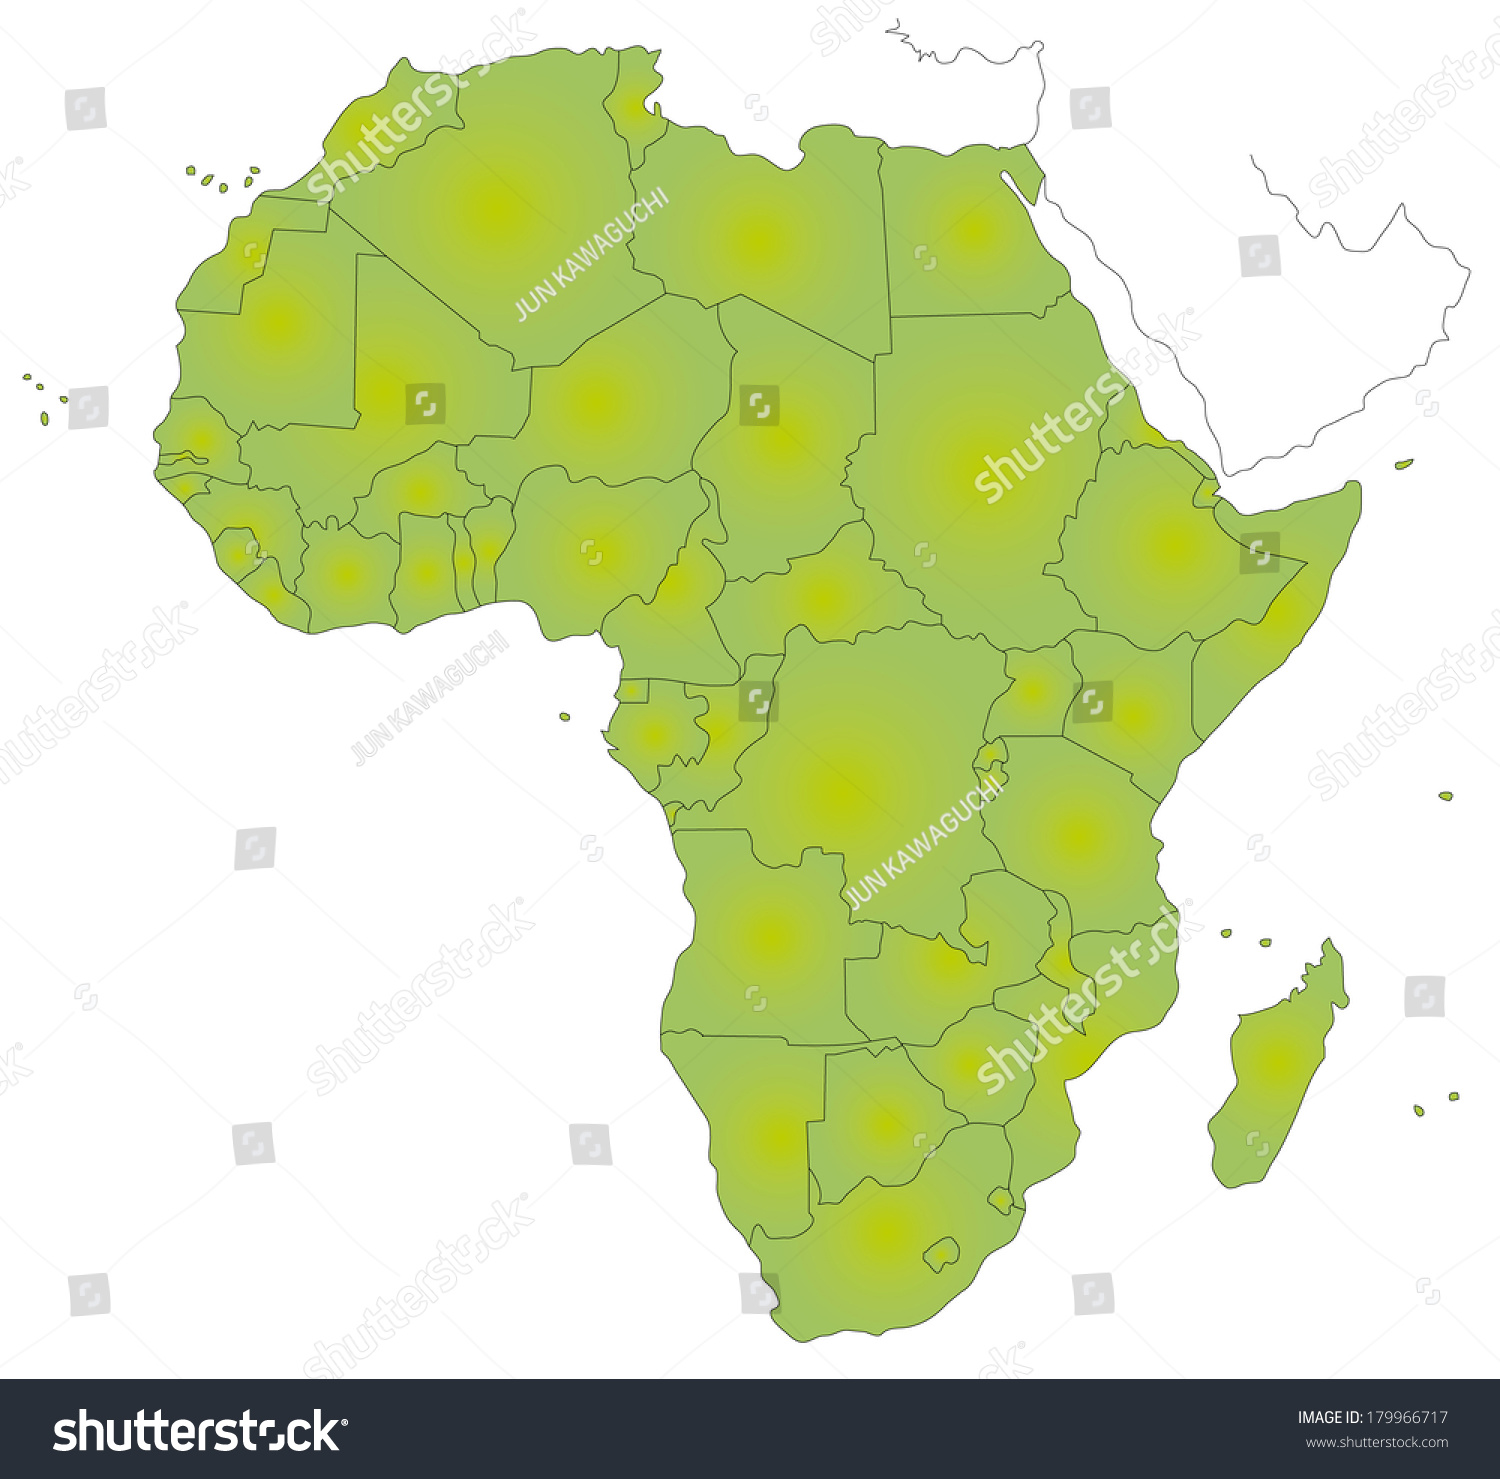 A Simple Map Of Africa